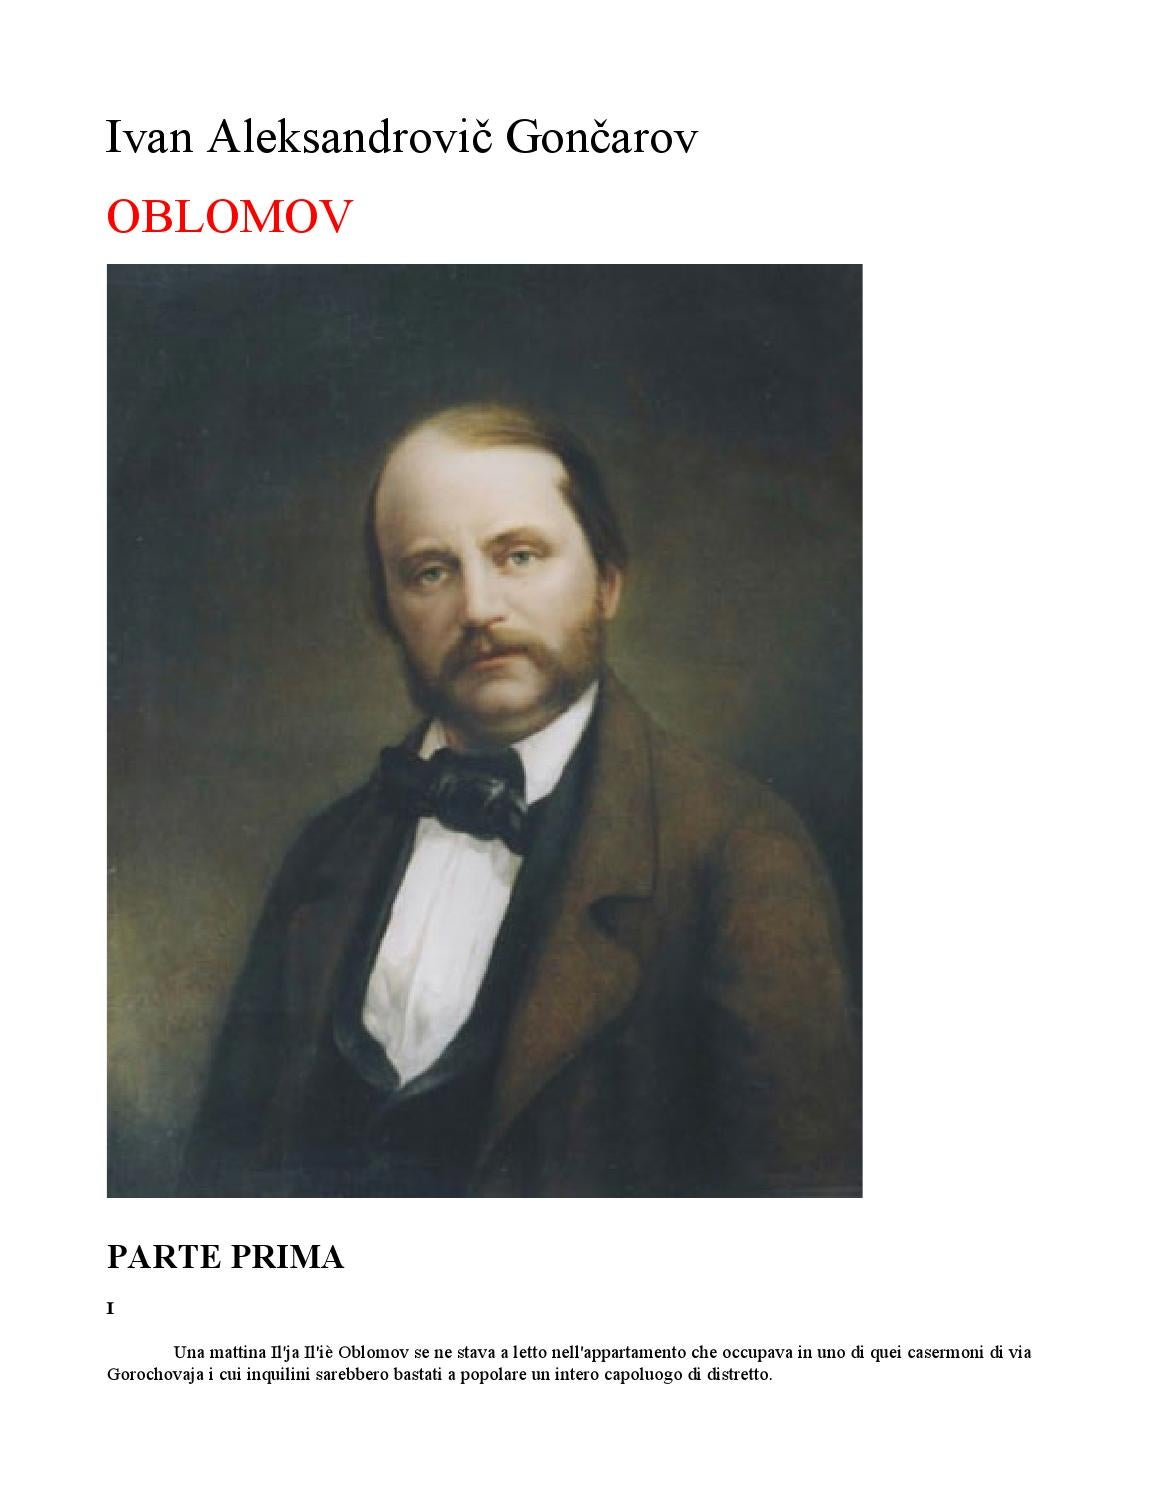 Oblomov2 by Rita - issuu 1251a2005b9